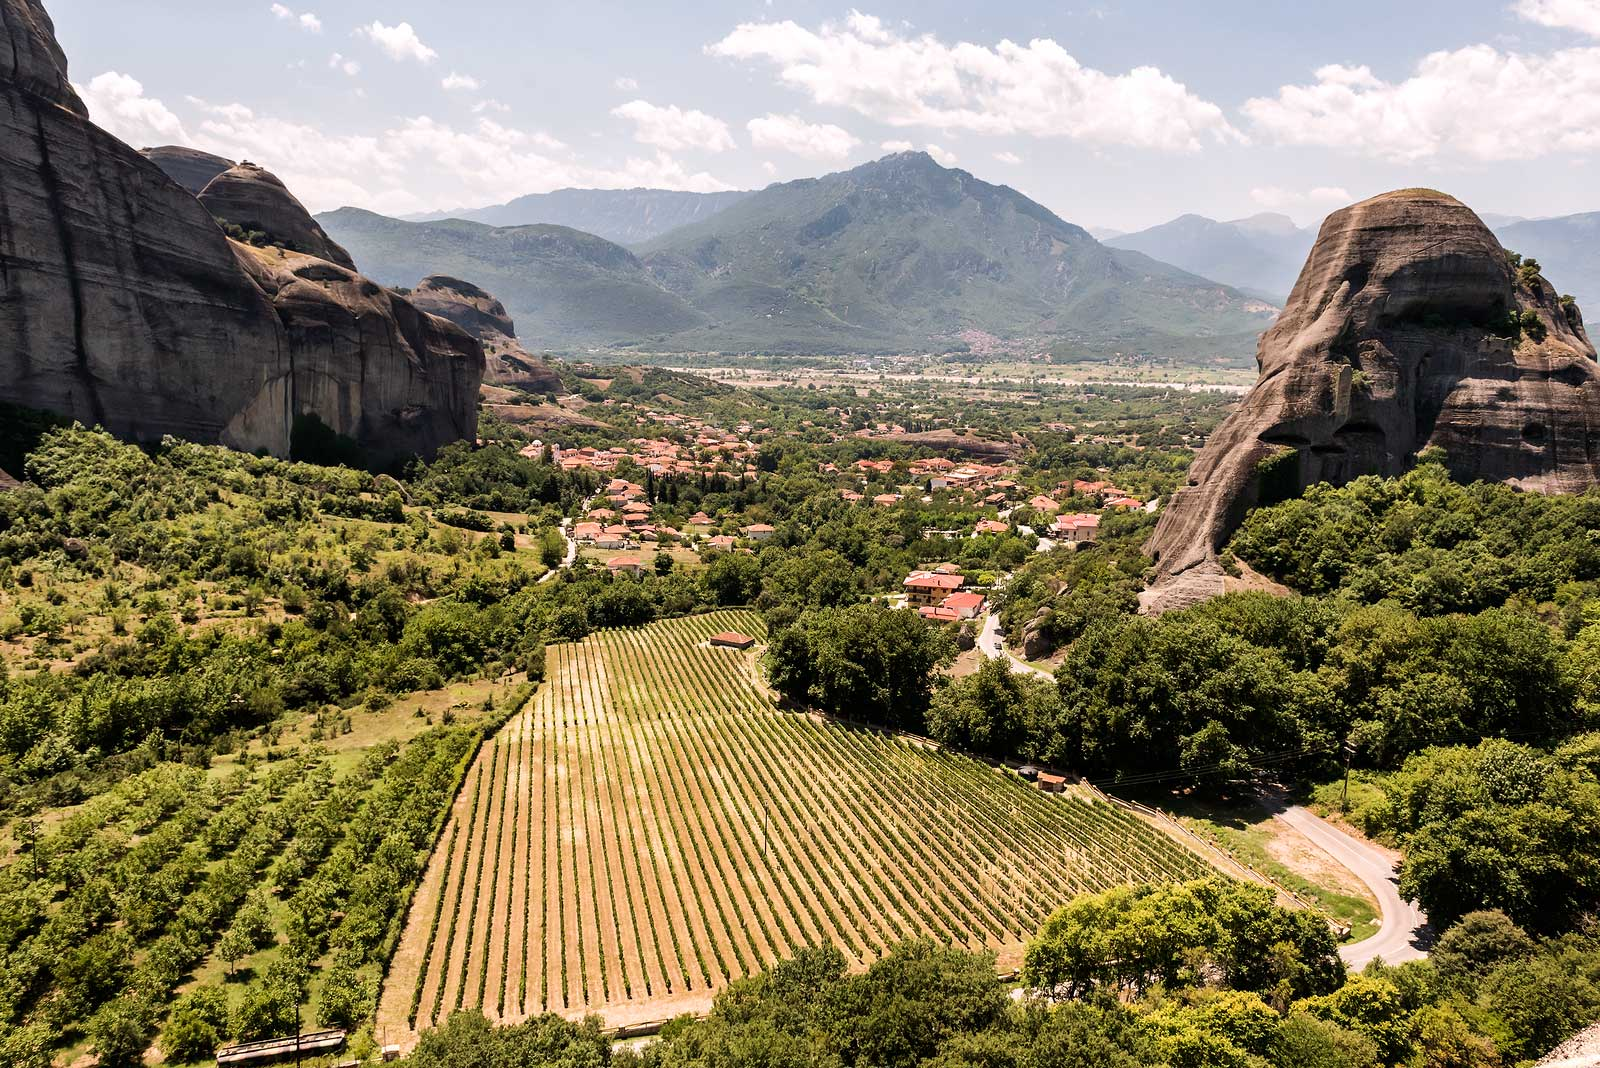 Vineyards near the UNESCO World Heritage site of Meteora.